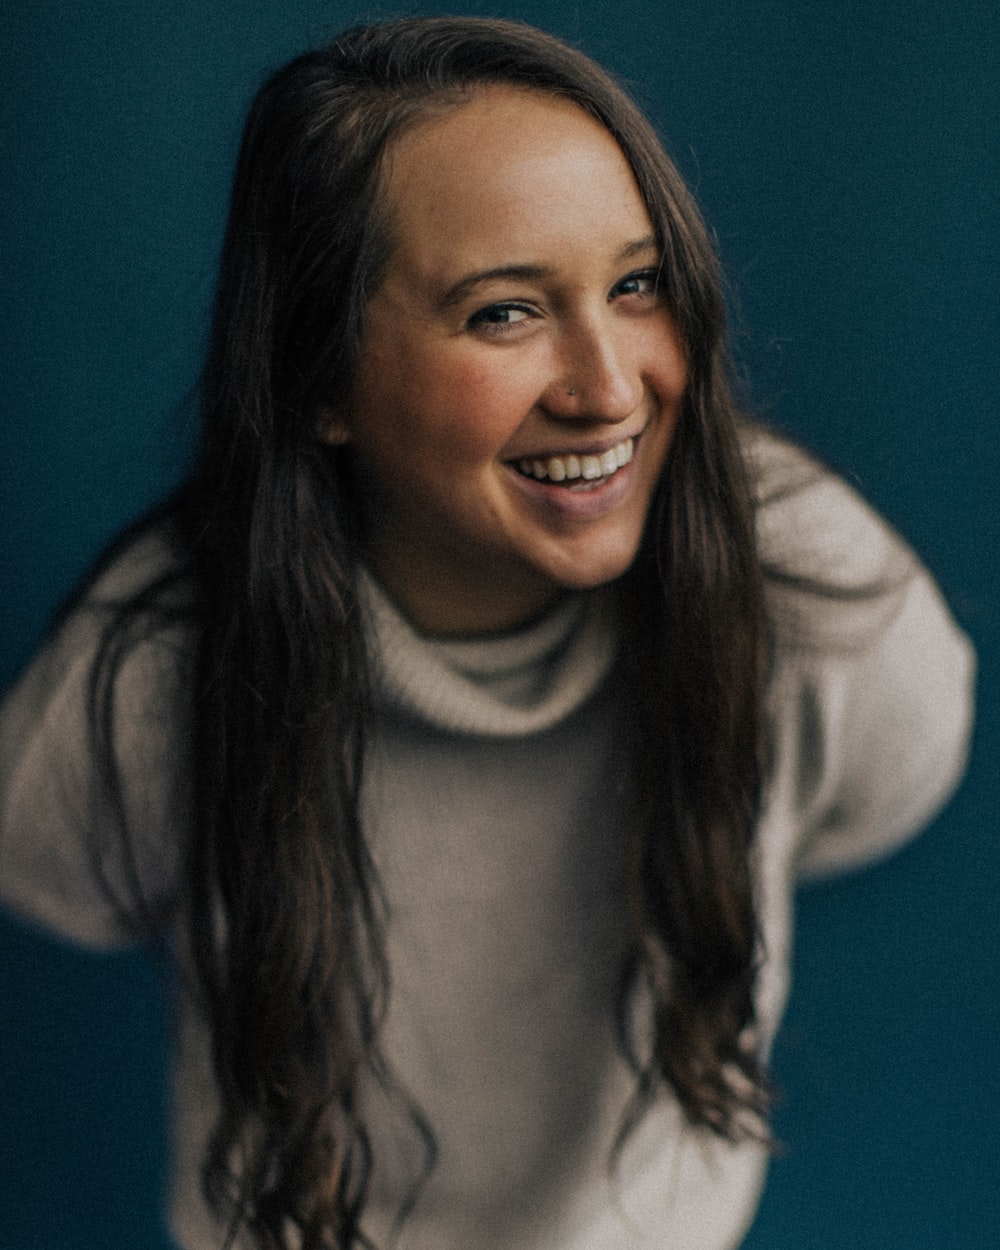 smiling woman in white turtleneck sweater